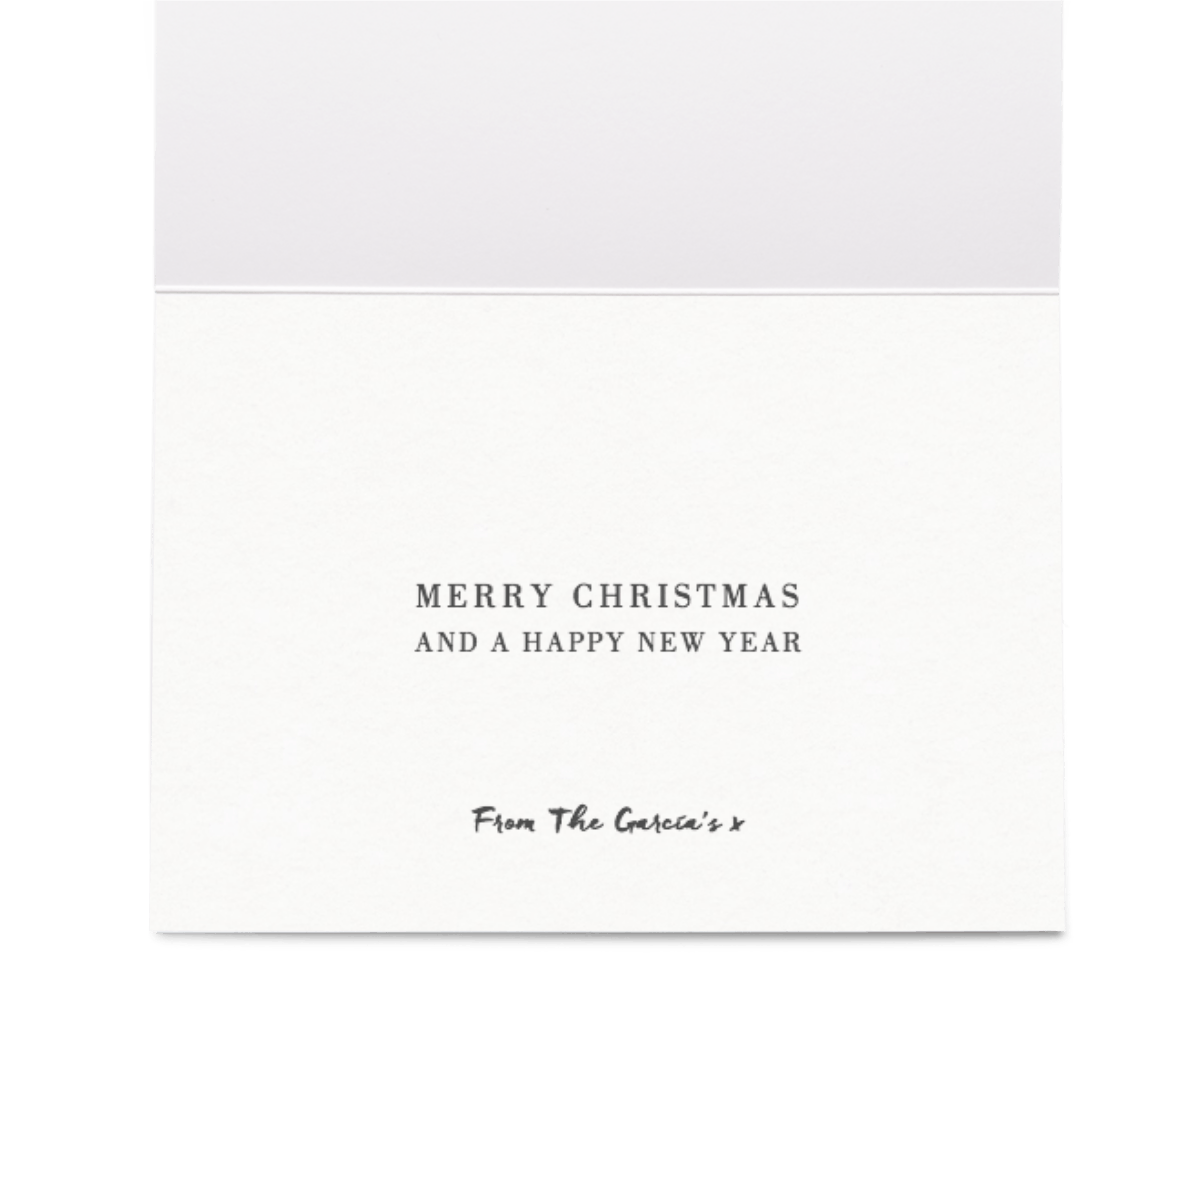 Https%3a%2f%2fwww.papier.com%2fproduct image%2f10469%2f20%2fchristmas scene 2668 interieur 1568227890.png?ixlib=rb 1.1